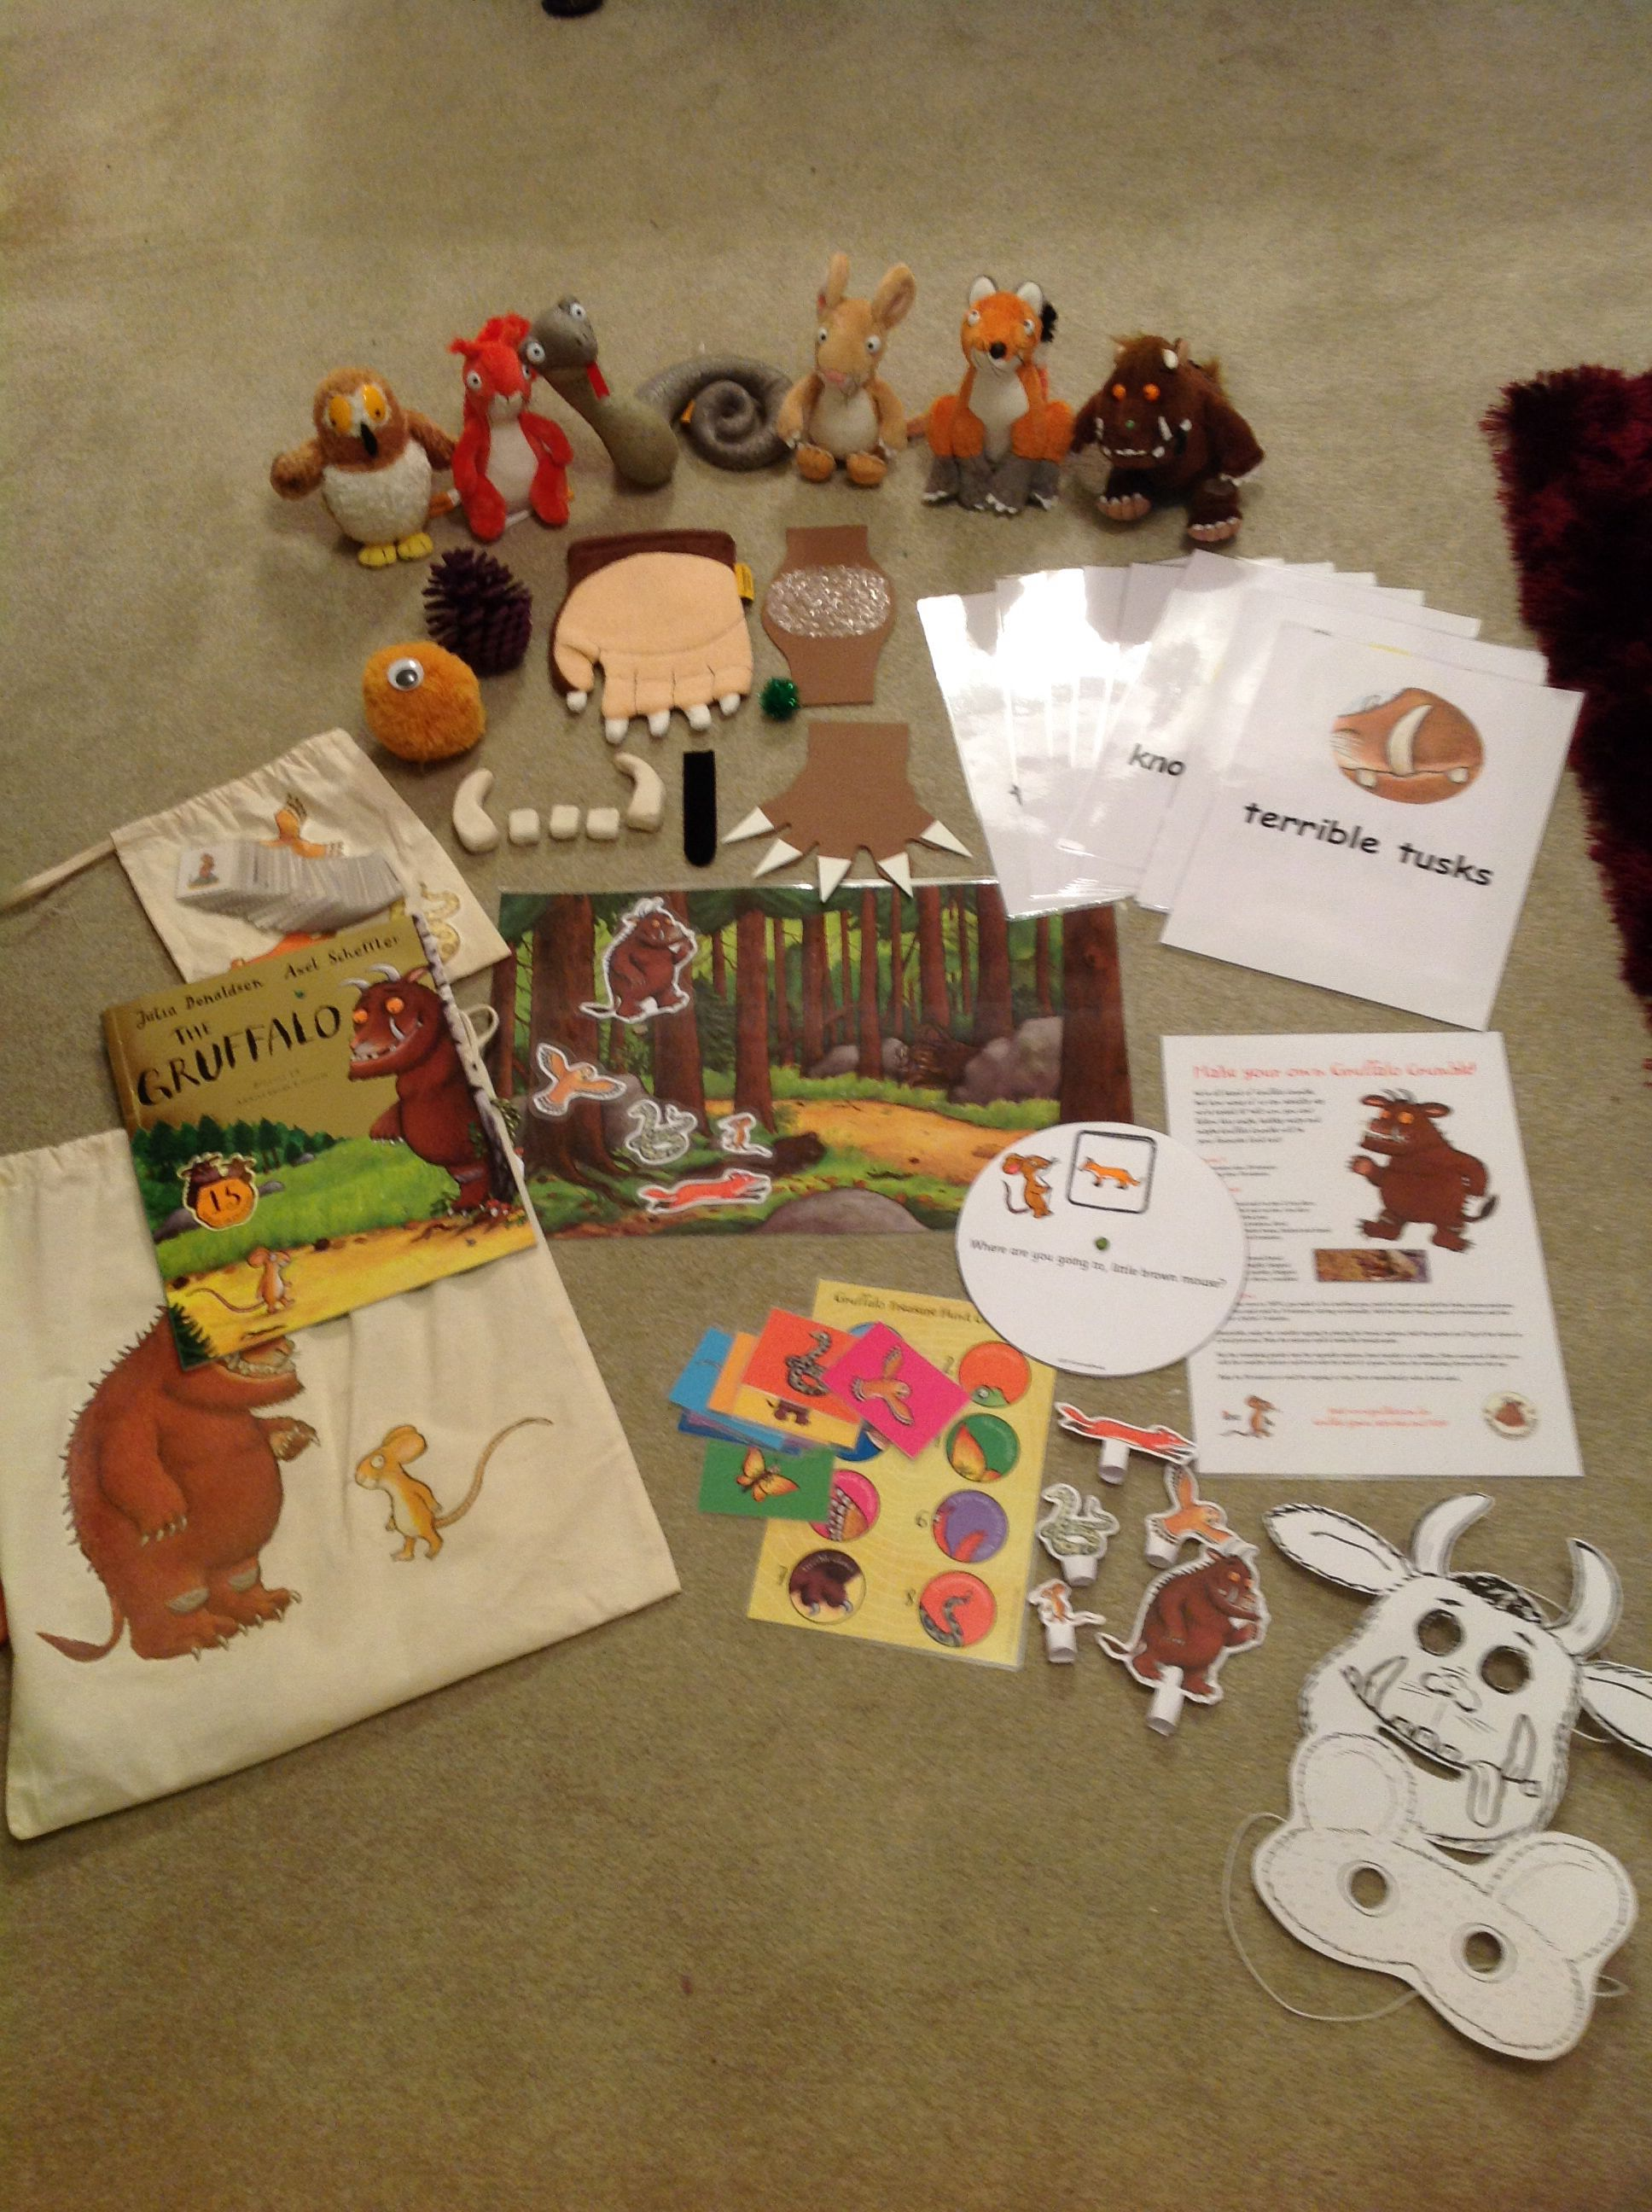 Completed Gruffalo Story Sack The Gruffalo Story